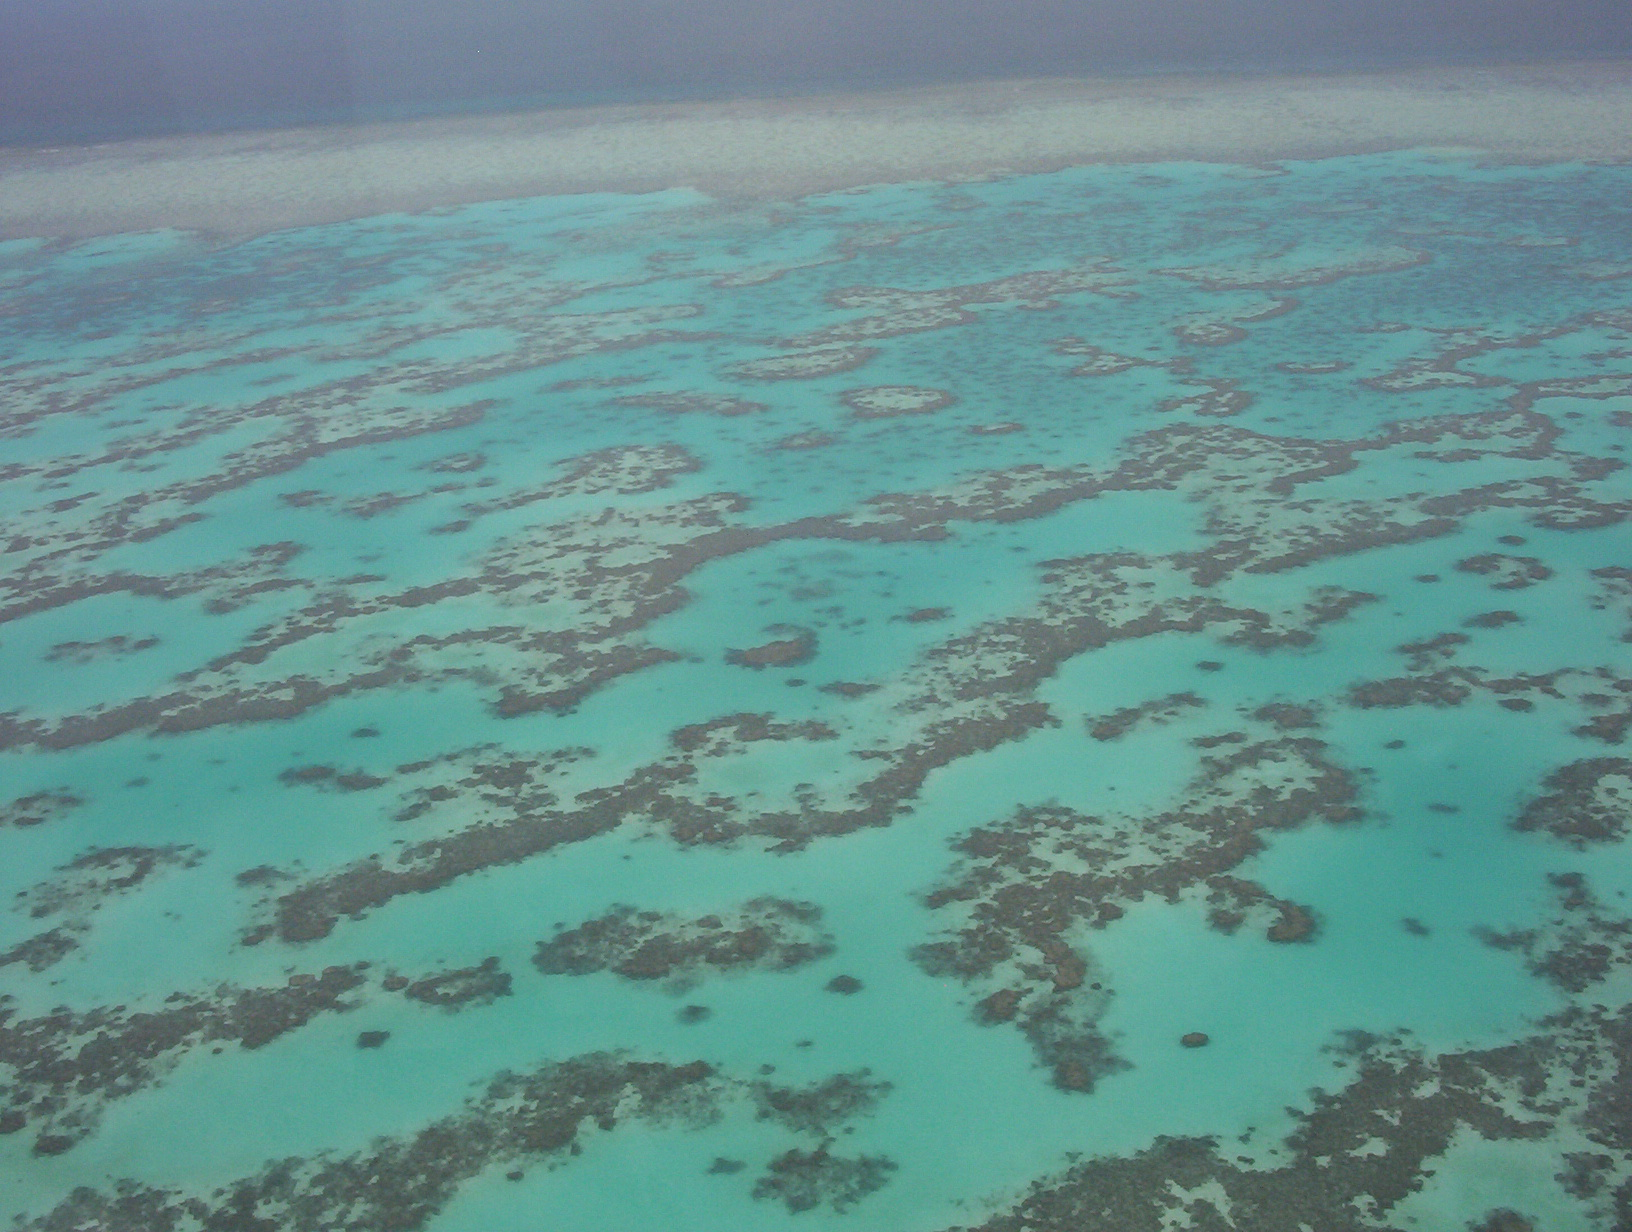 The climate change is effecting the Barrier Reef